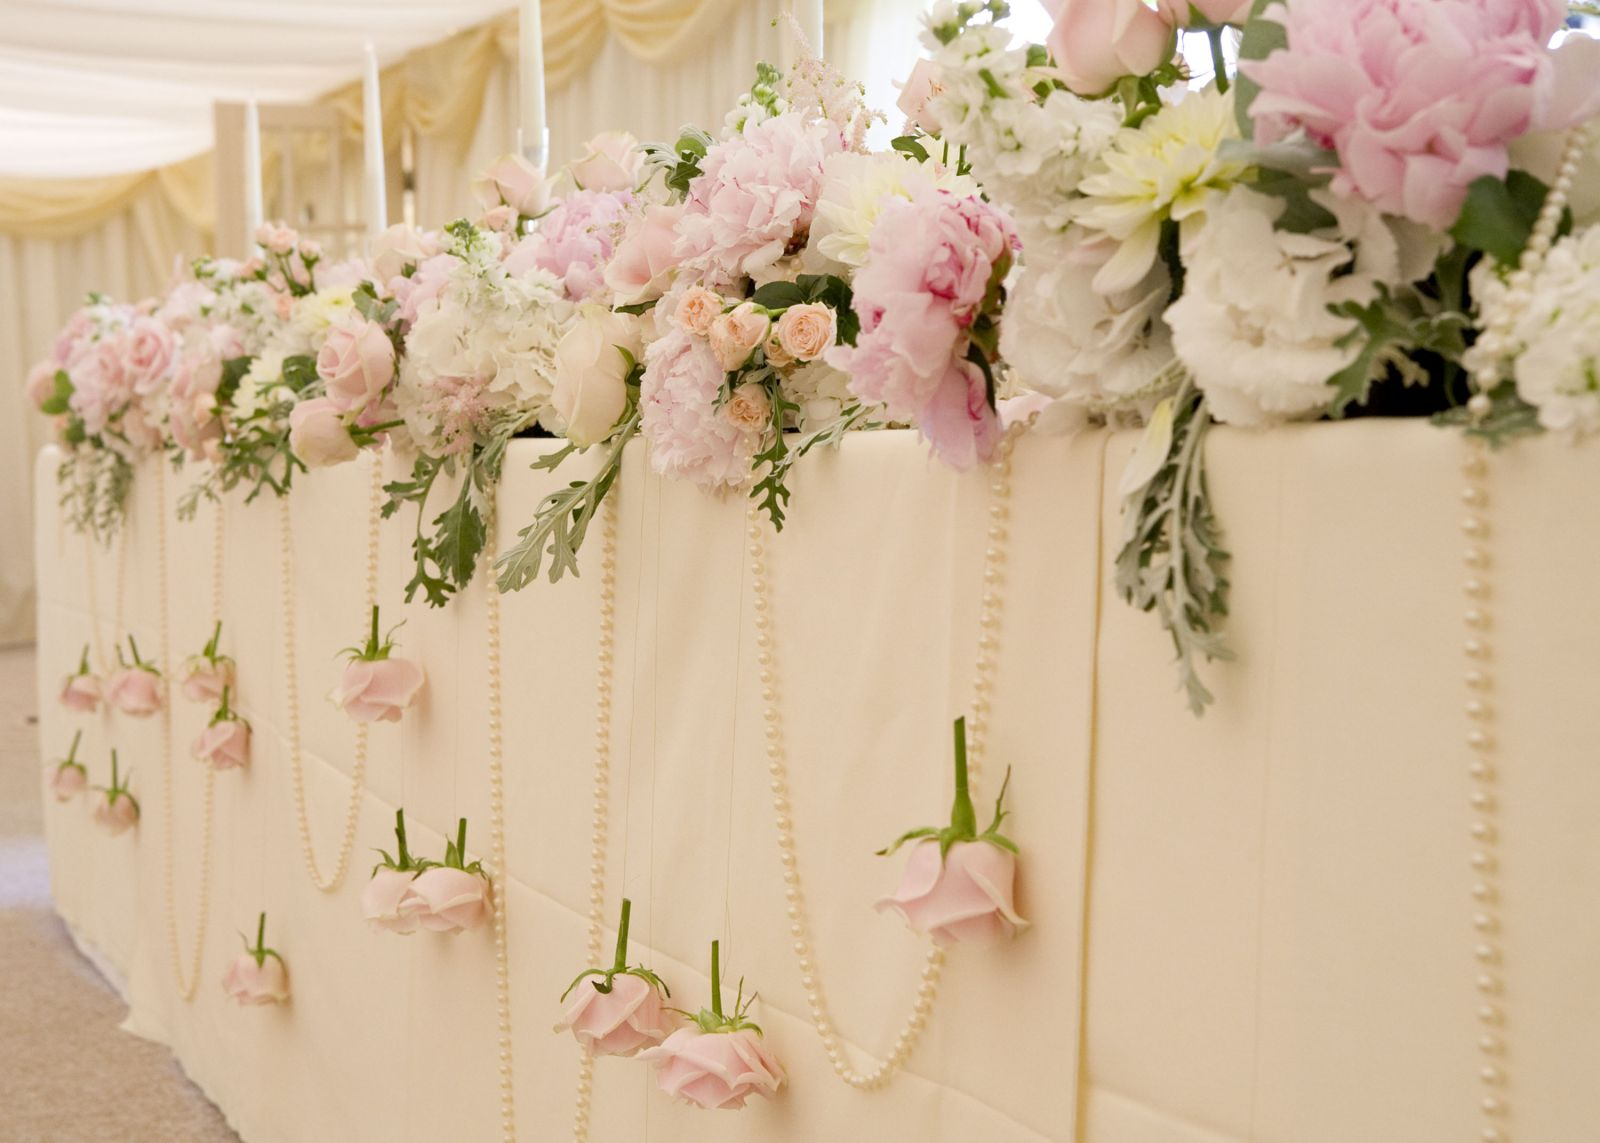 ... Garland Of Flowers And Pearls Along The Length Of The Top Table And  Hung Sweet Avalanche Roses On Wire To Break Up The Neutral Cream Tablecloth  With The ...